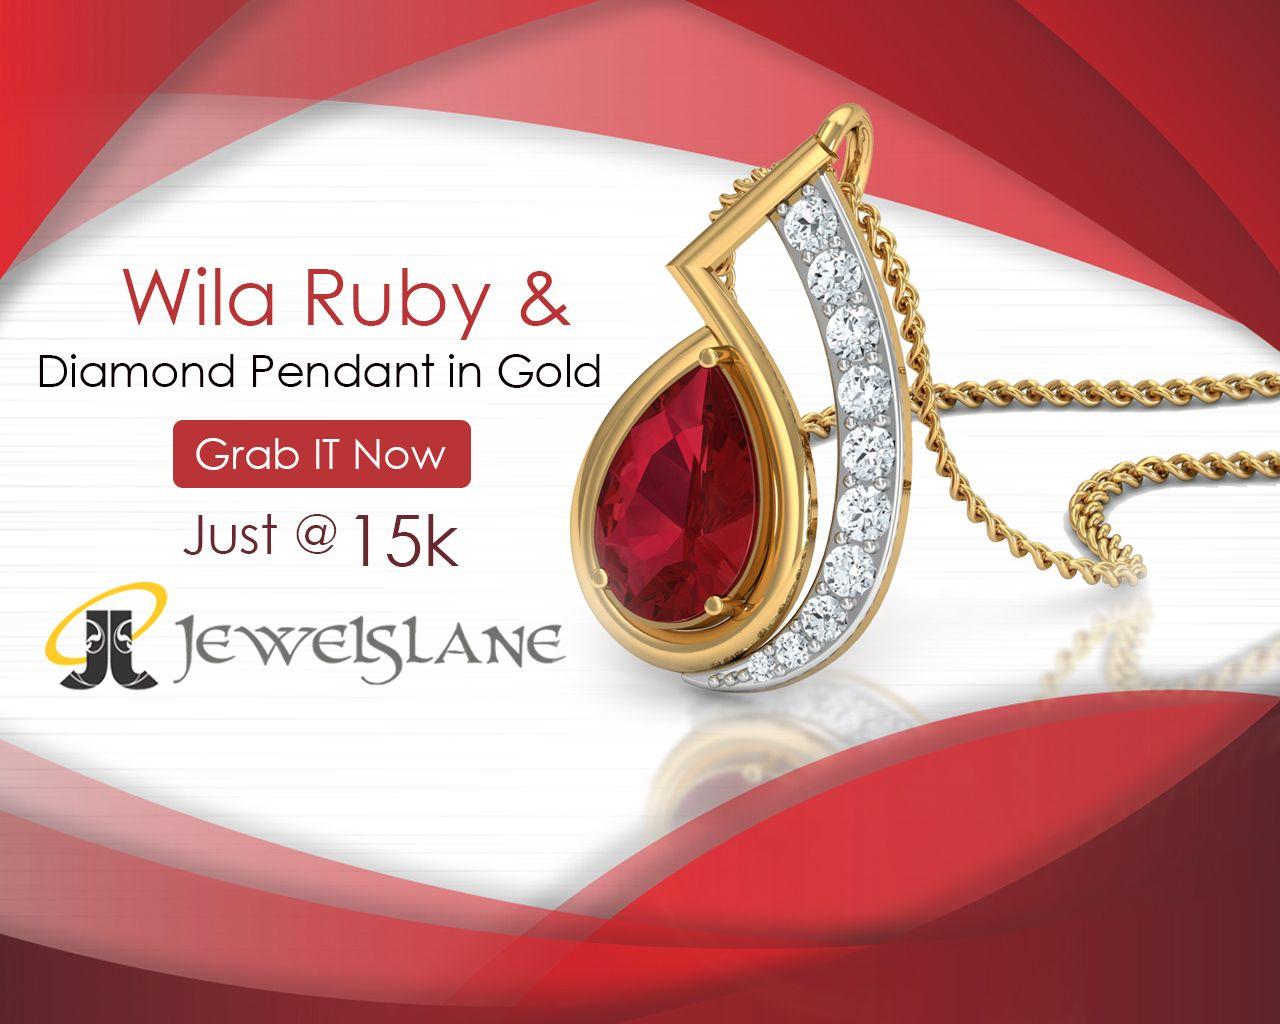 Wila ruby pendant in gold studded with pear shape ruby and